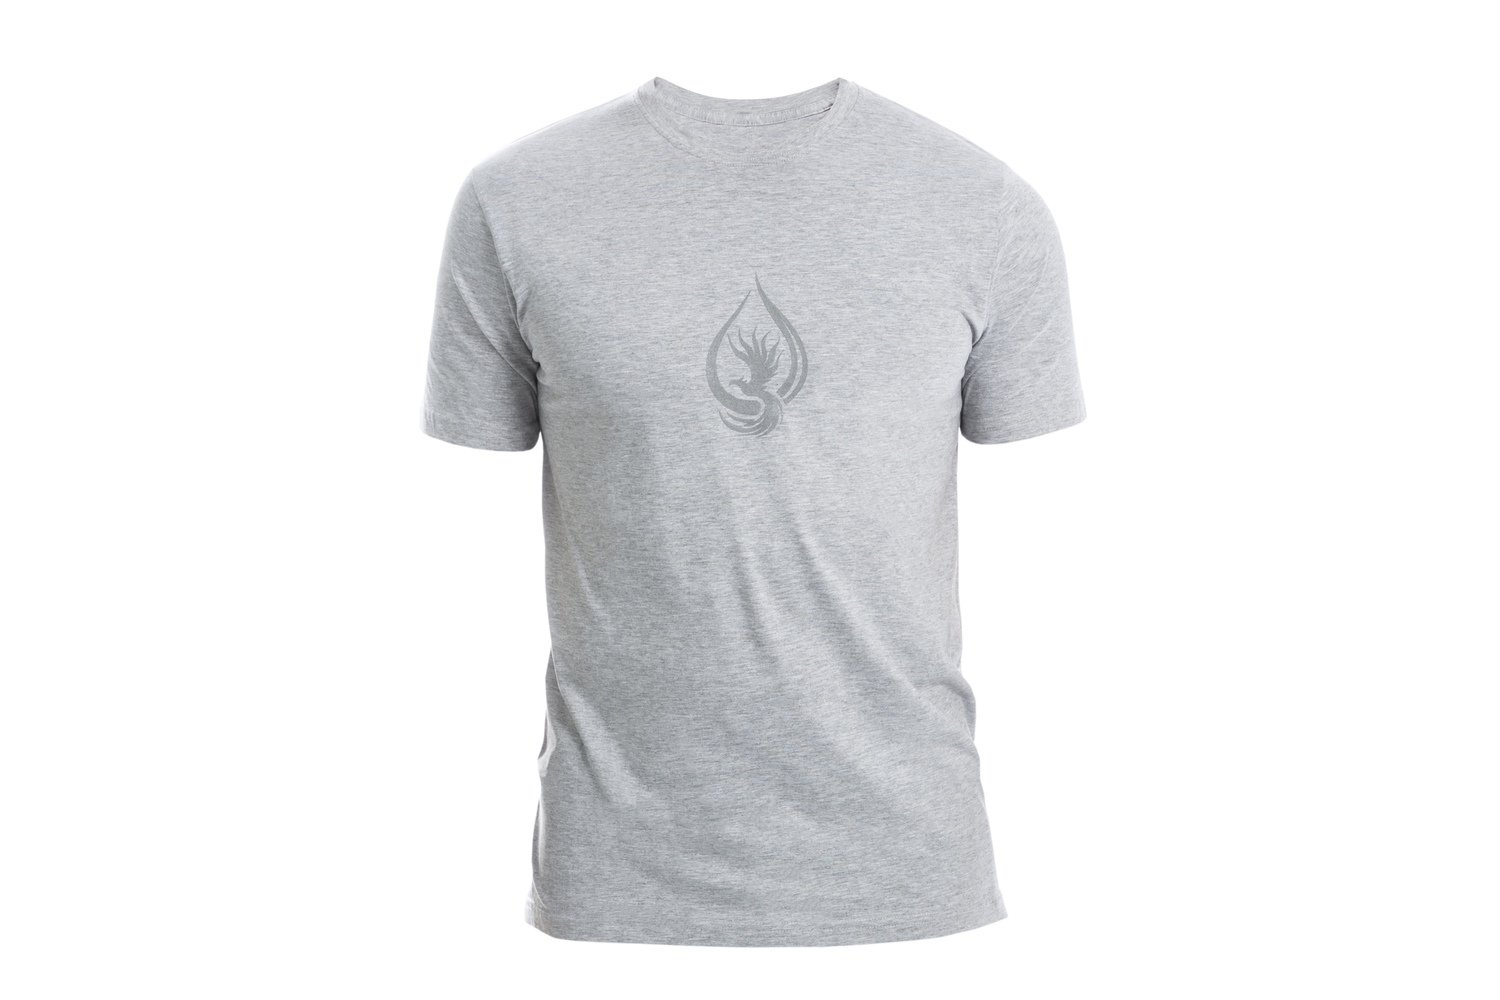 T-shirt MAN Grey/Silver